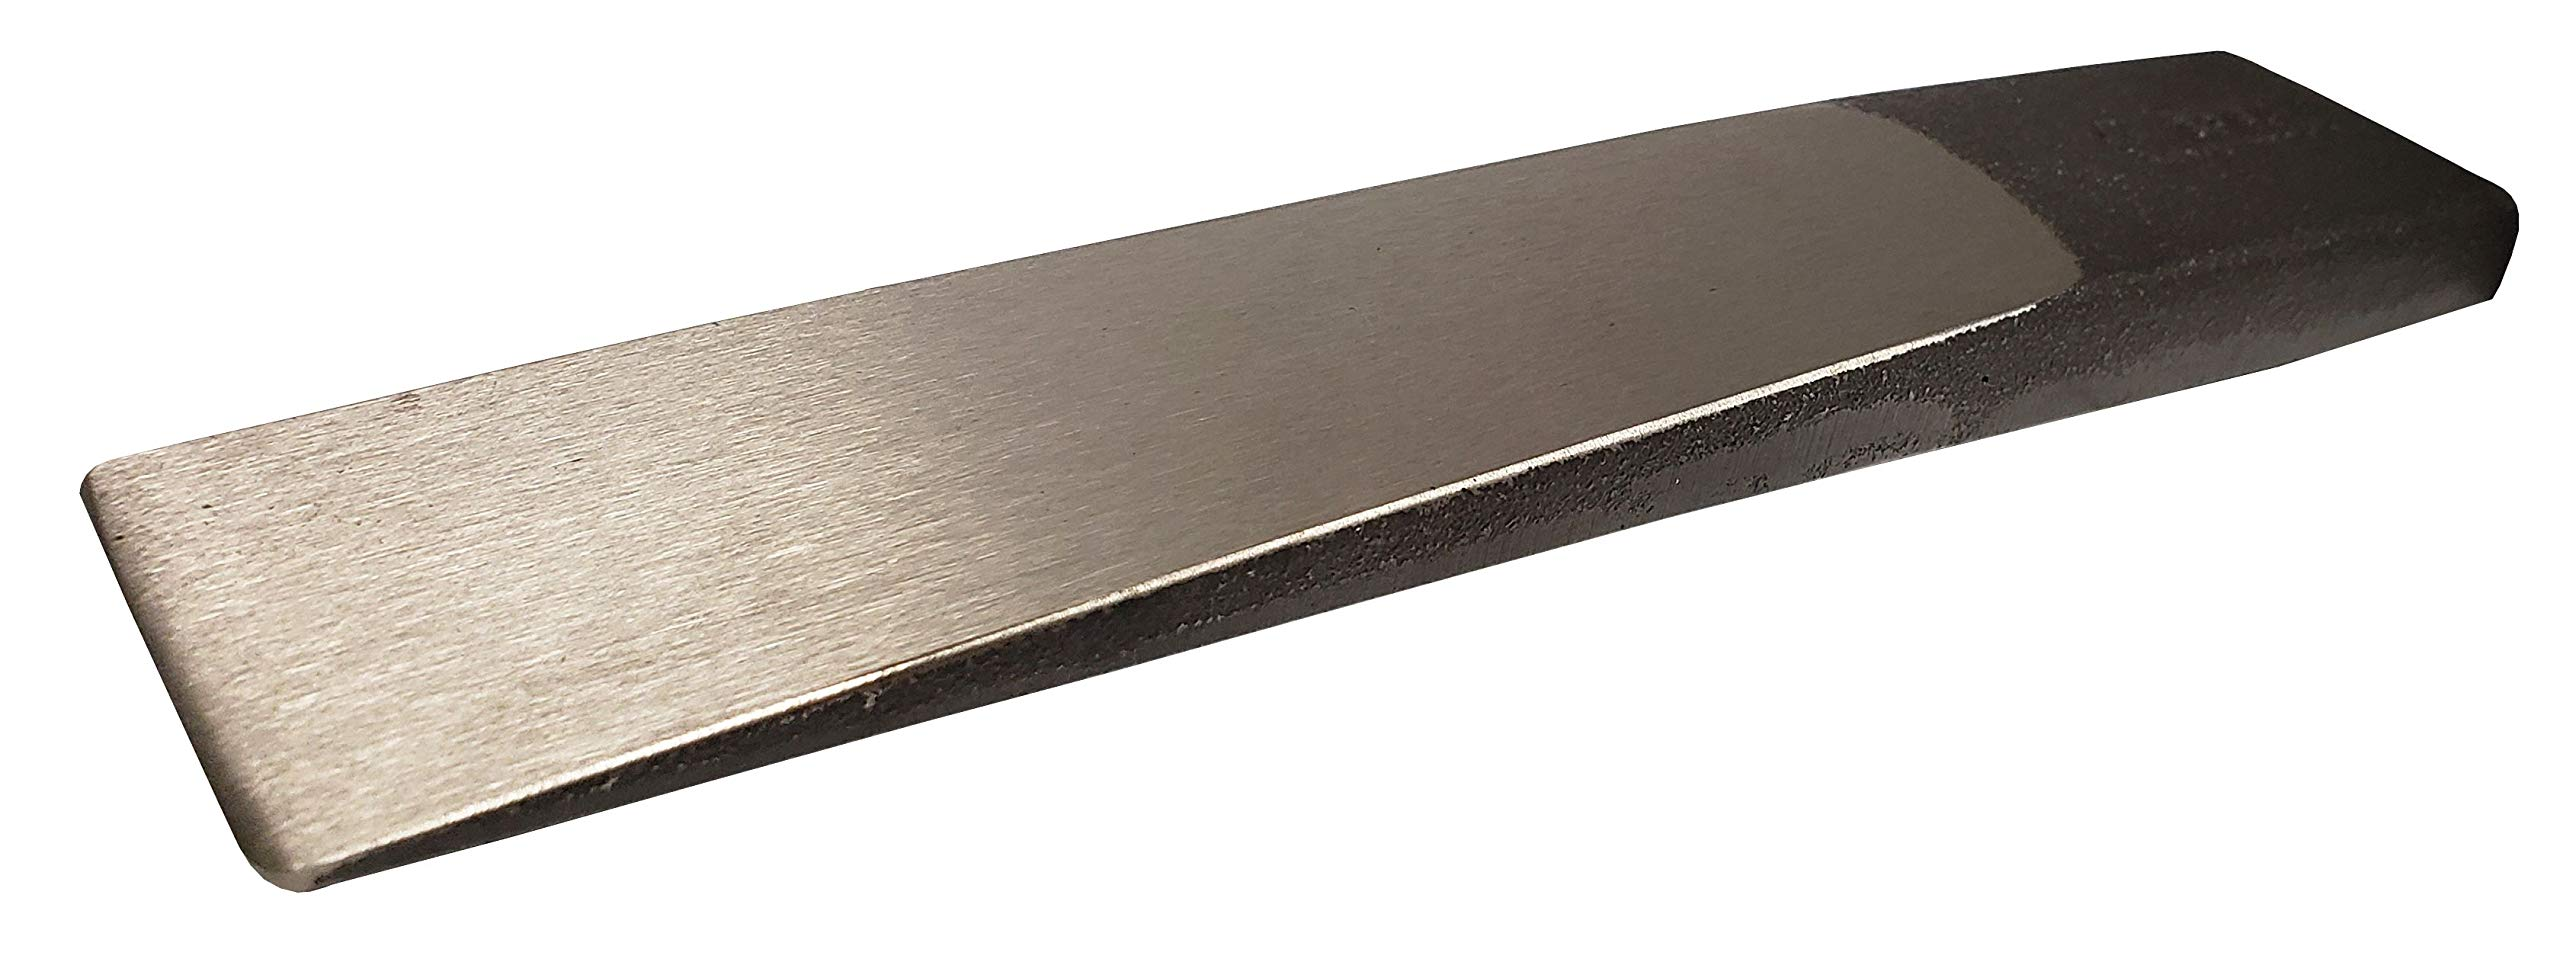 Rivet Bucking BAR - 10'' Length X 2'' Width X 5/8'' Height. Made from CASE Hardened 1018 Carbon Steel, Designed to Help Clinch Solid Rivets with an AIR Hammer (CA-42) by HANSON RIVET